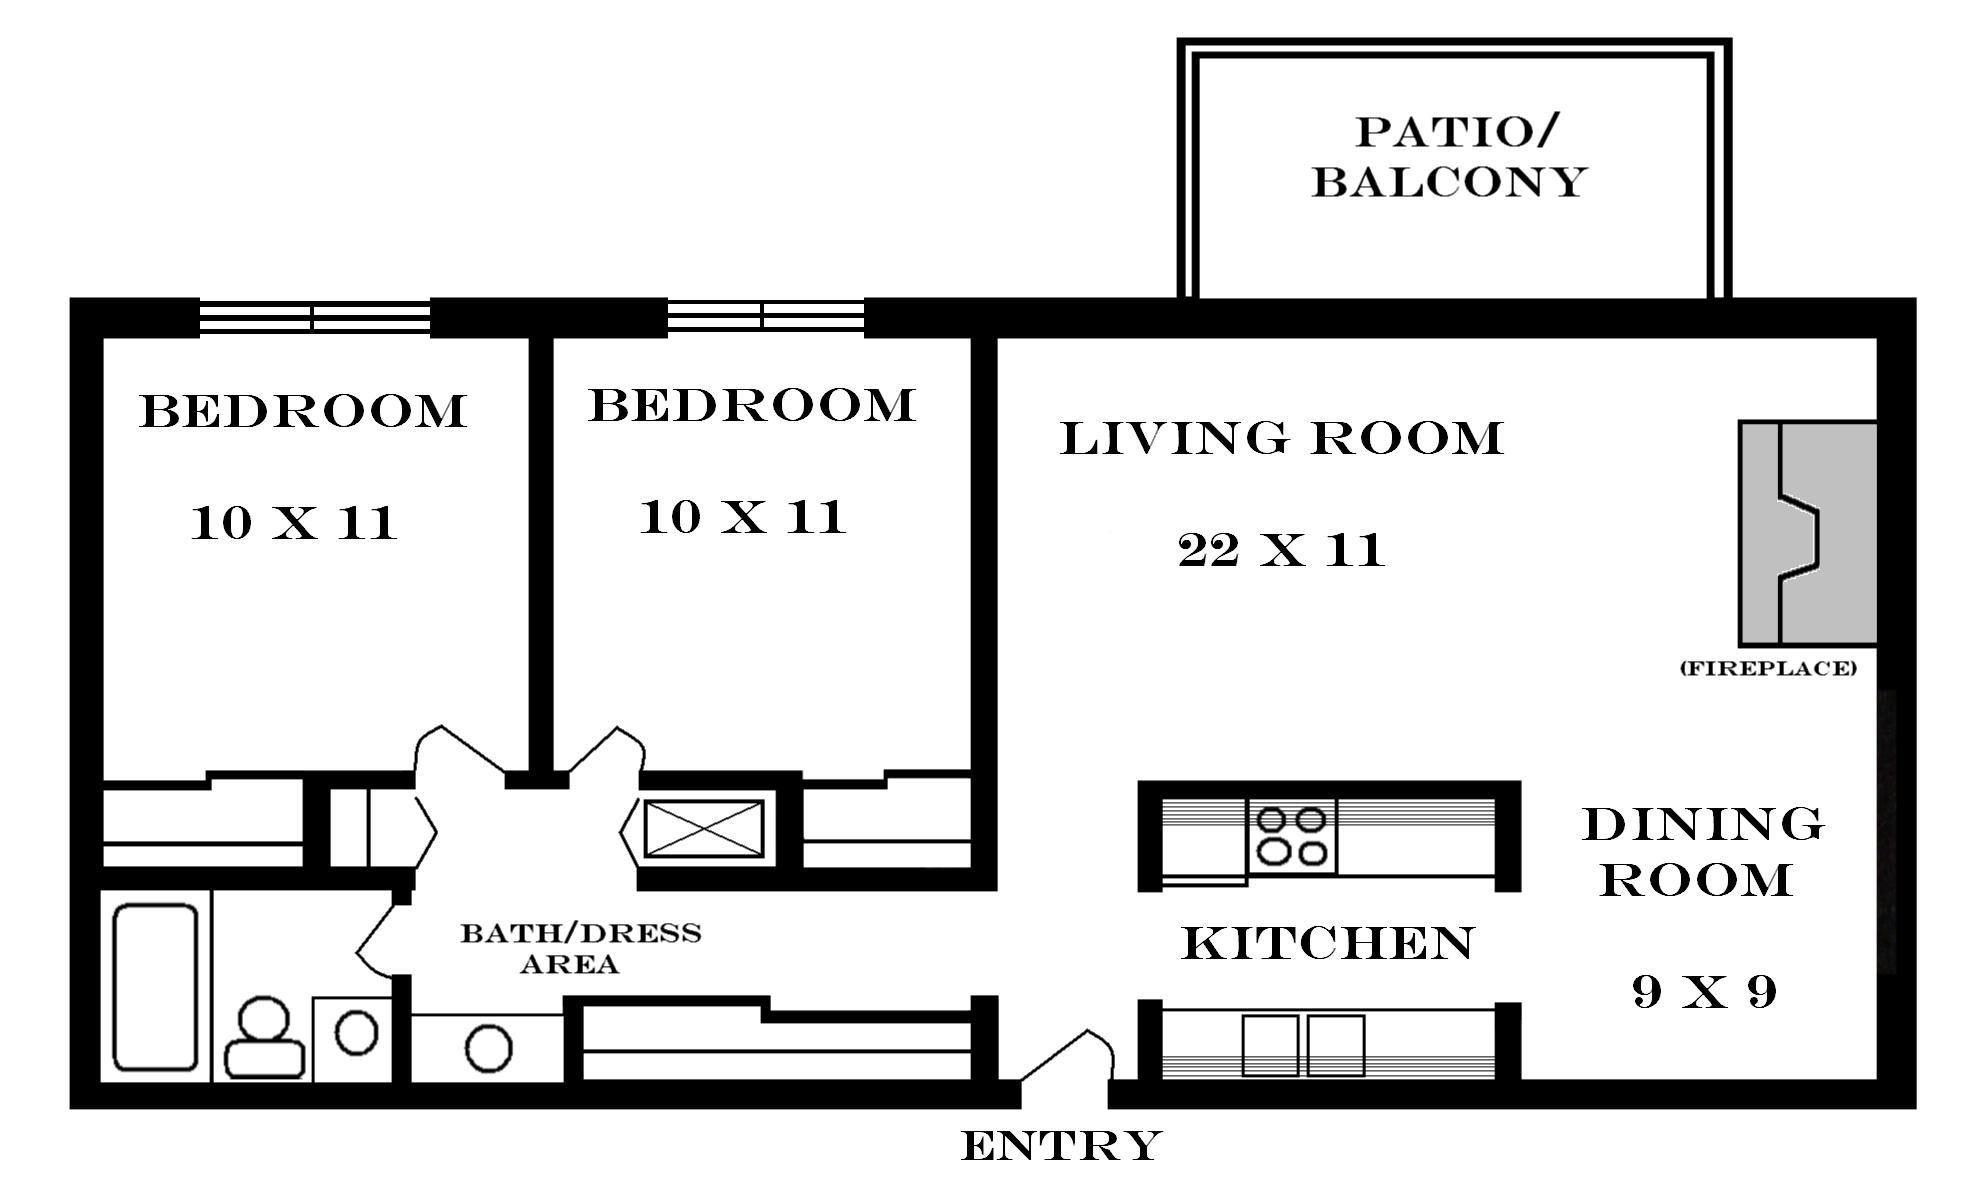 Small house floor plans 2 bedrooms 900 tiny houses for Floor plans 2 bedroom